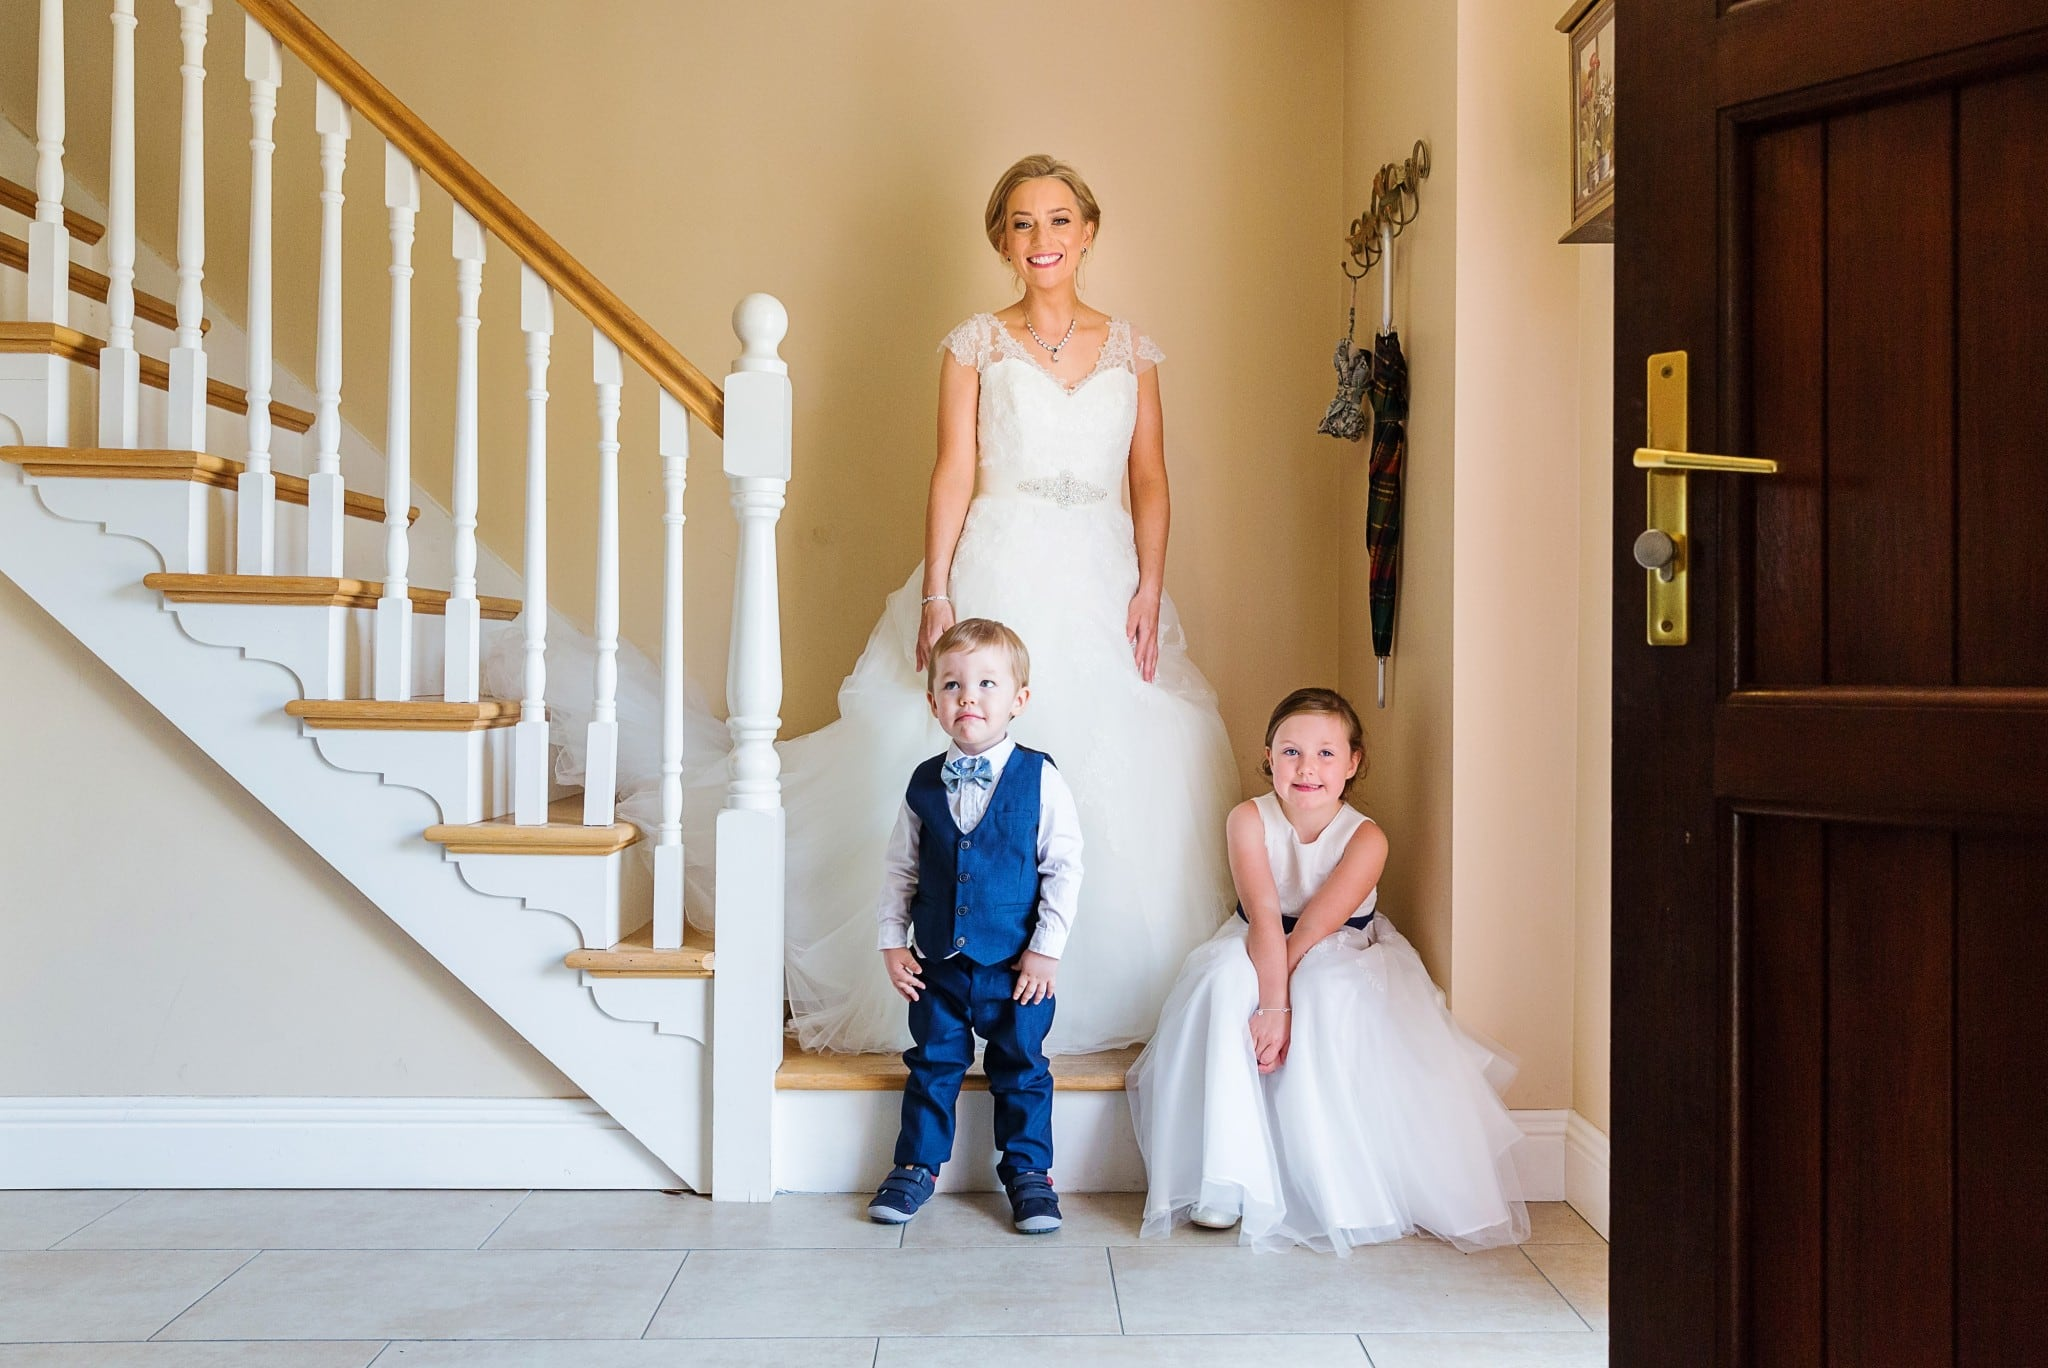 Destination_wedding_ireland_wedding_photography_luxury00007